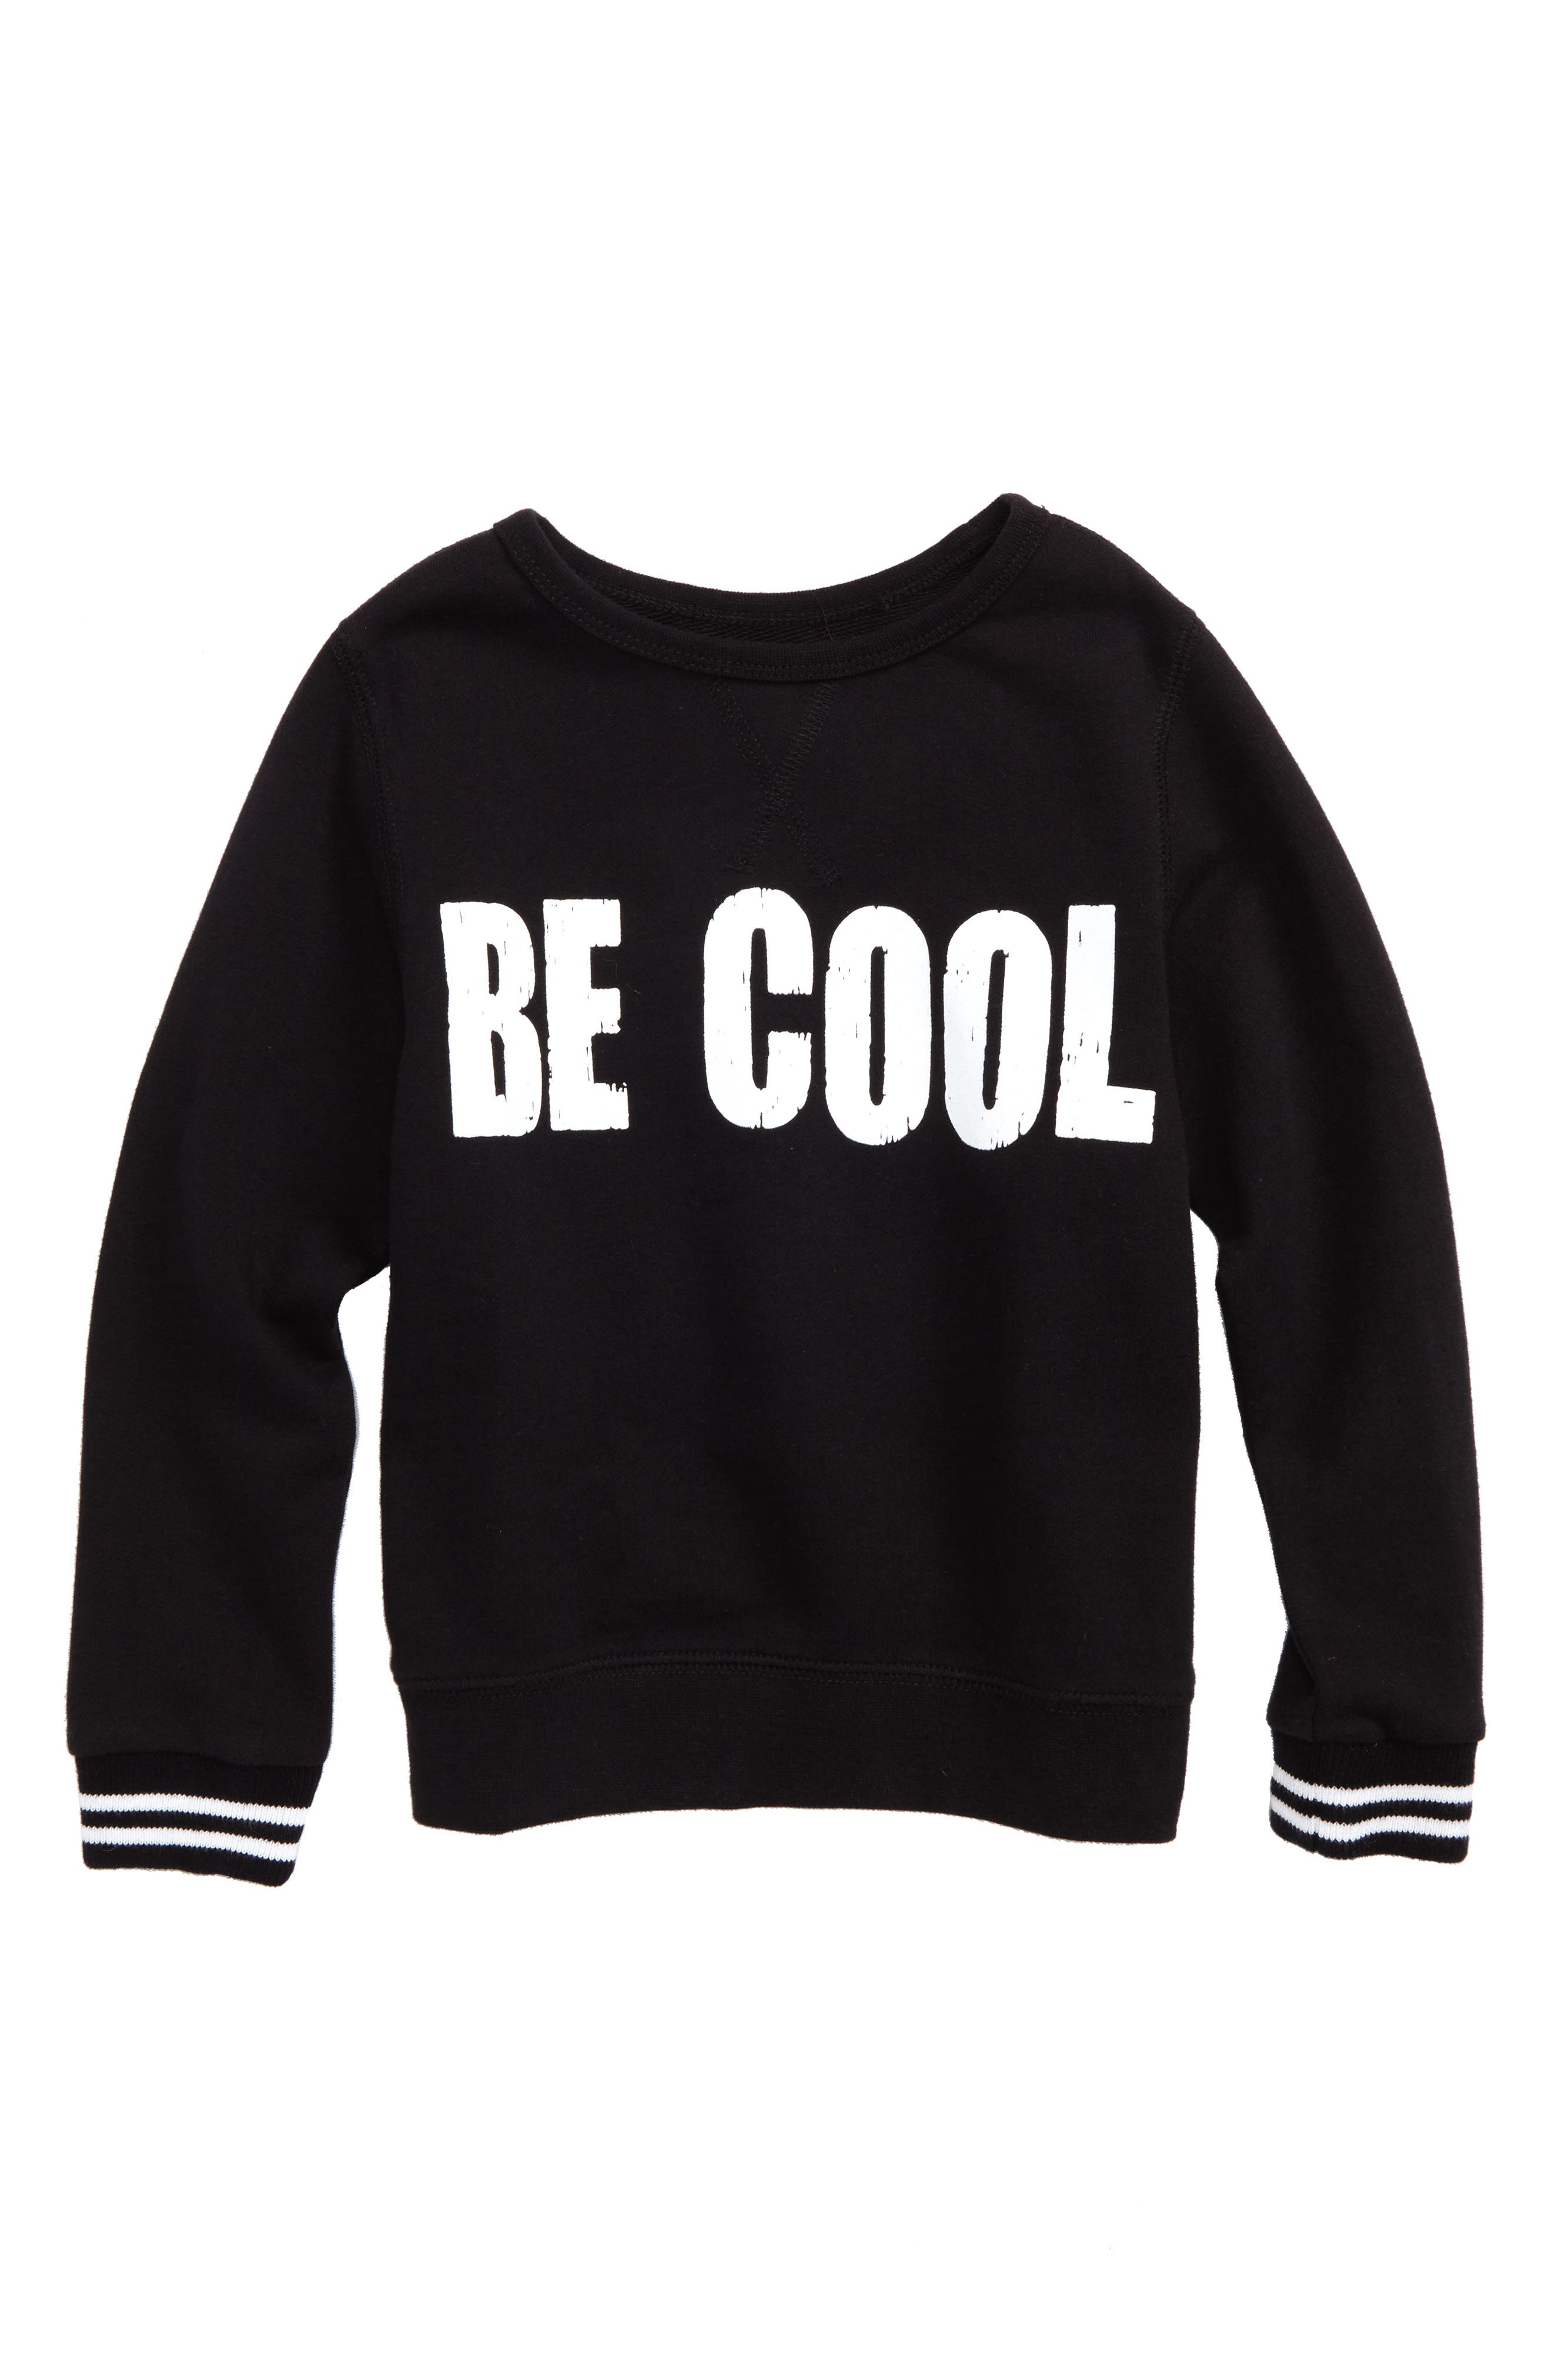 Be Cool Graphic Sweatshirt,                         Main,                         color, Black